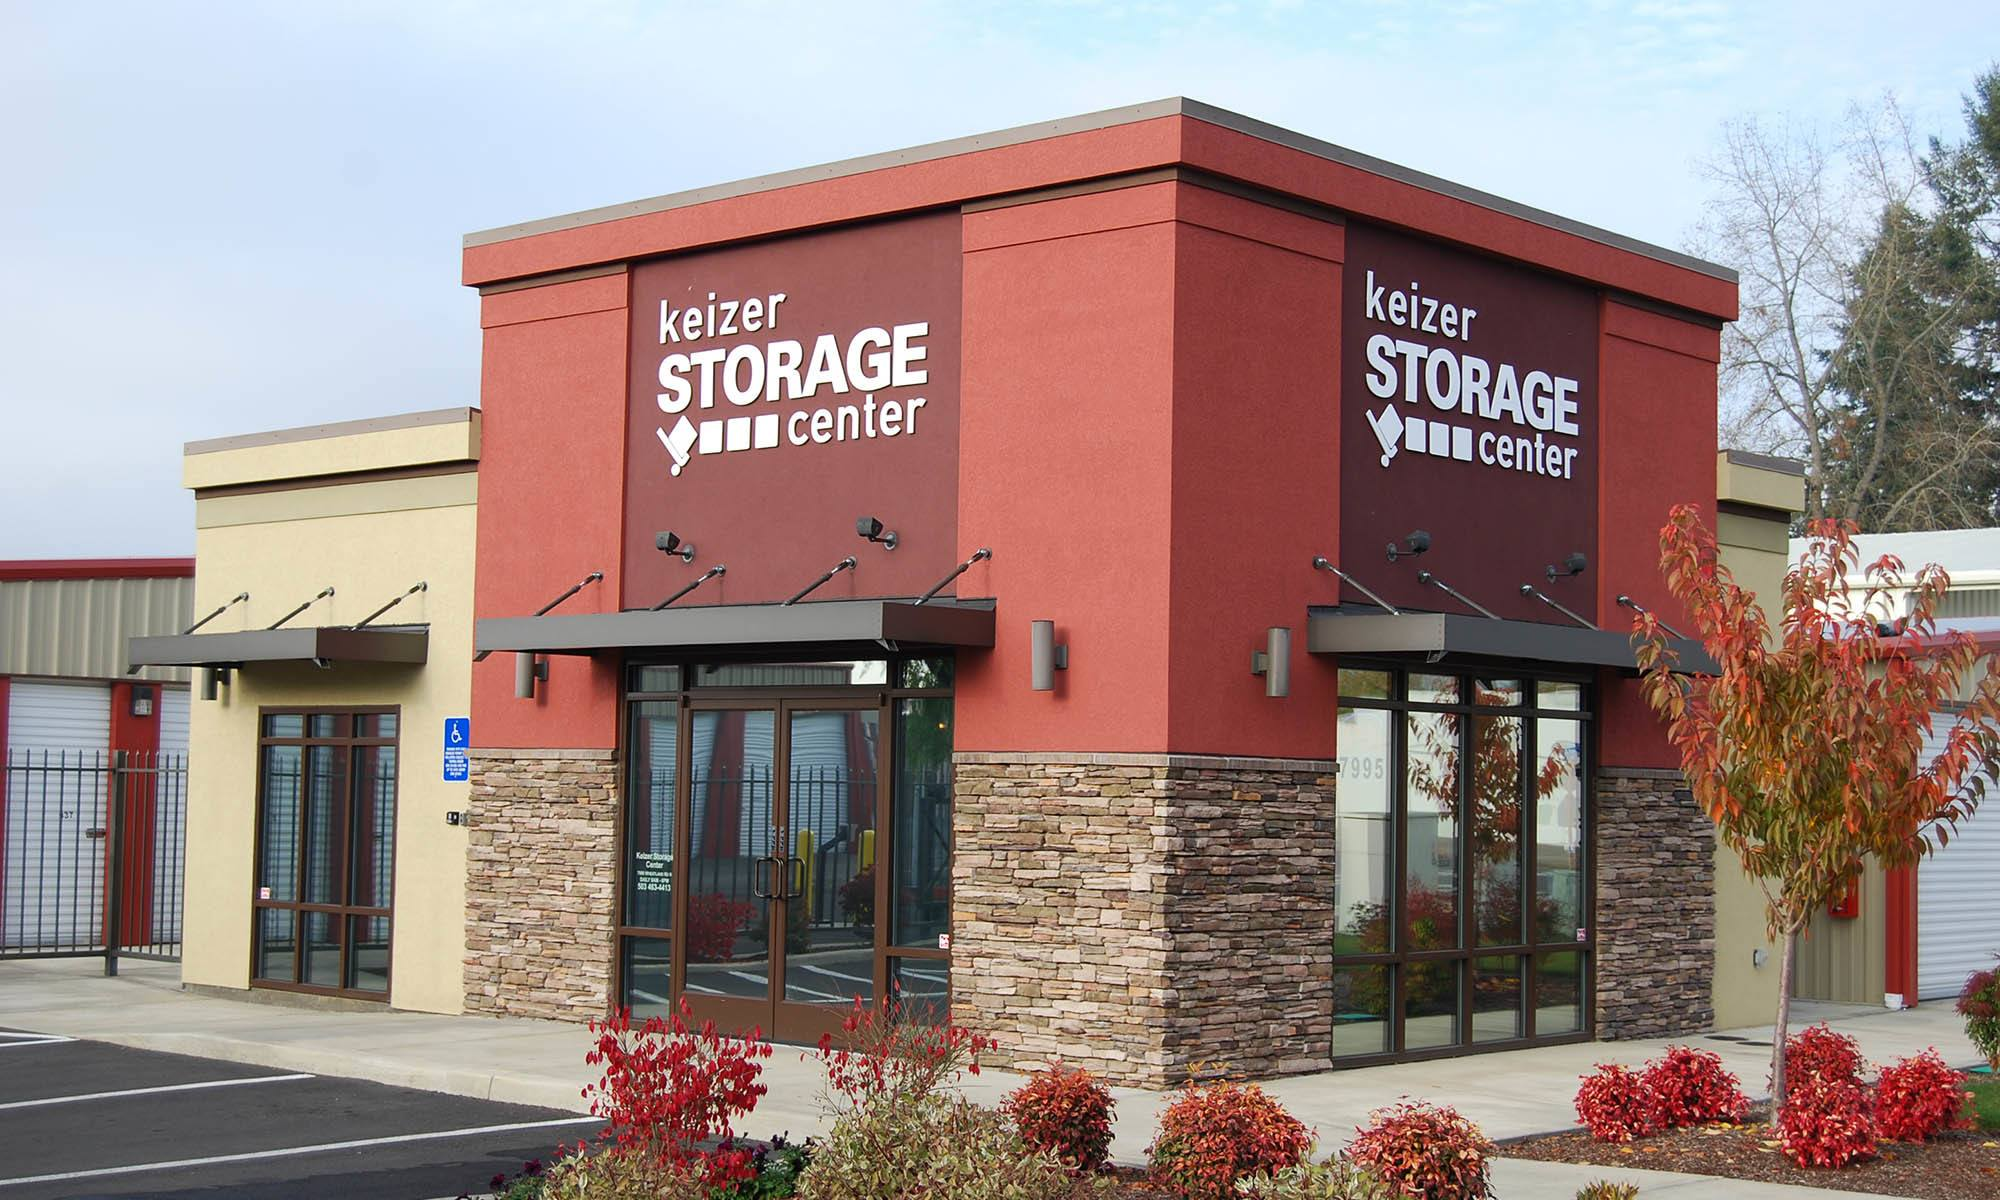 Self storage for all of your needs in Keizer, OR